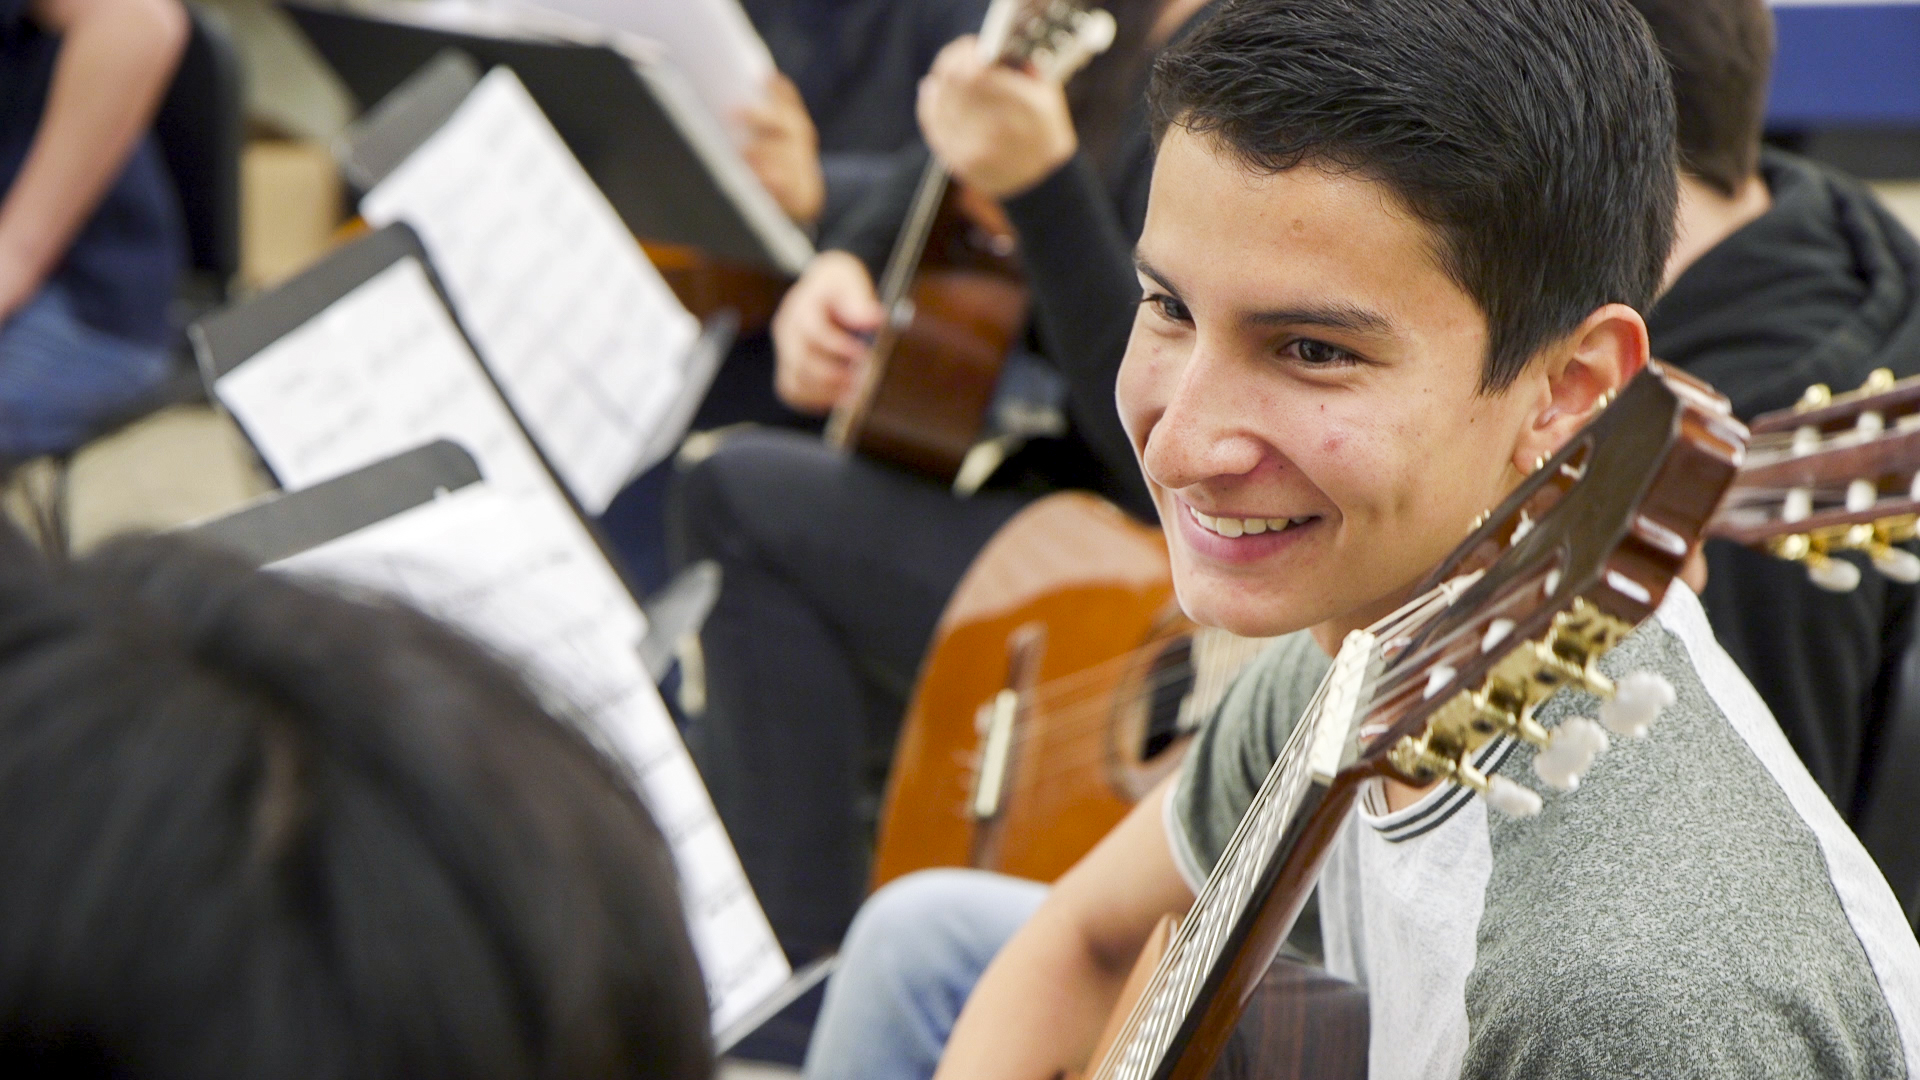 Pablo Esteban Quiñonez Paz learned to play guitar through Lead Guitar, part of the UA CFA in Schools outreach program. He plans to pursue a degree in music at the UA.